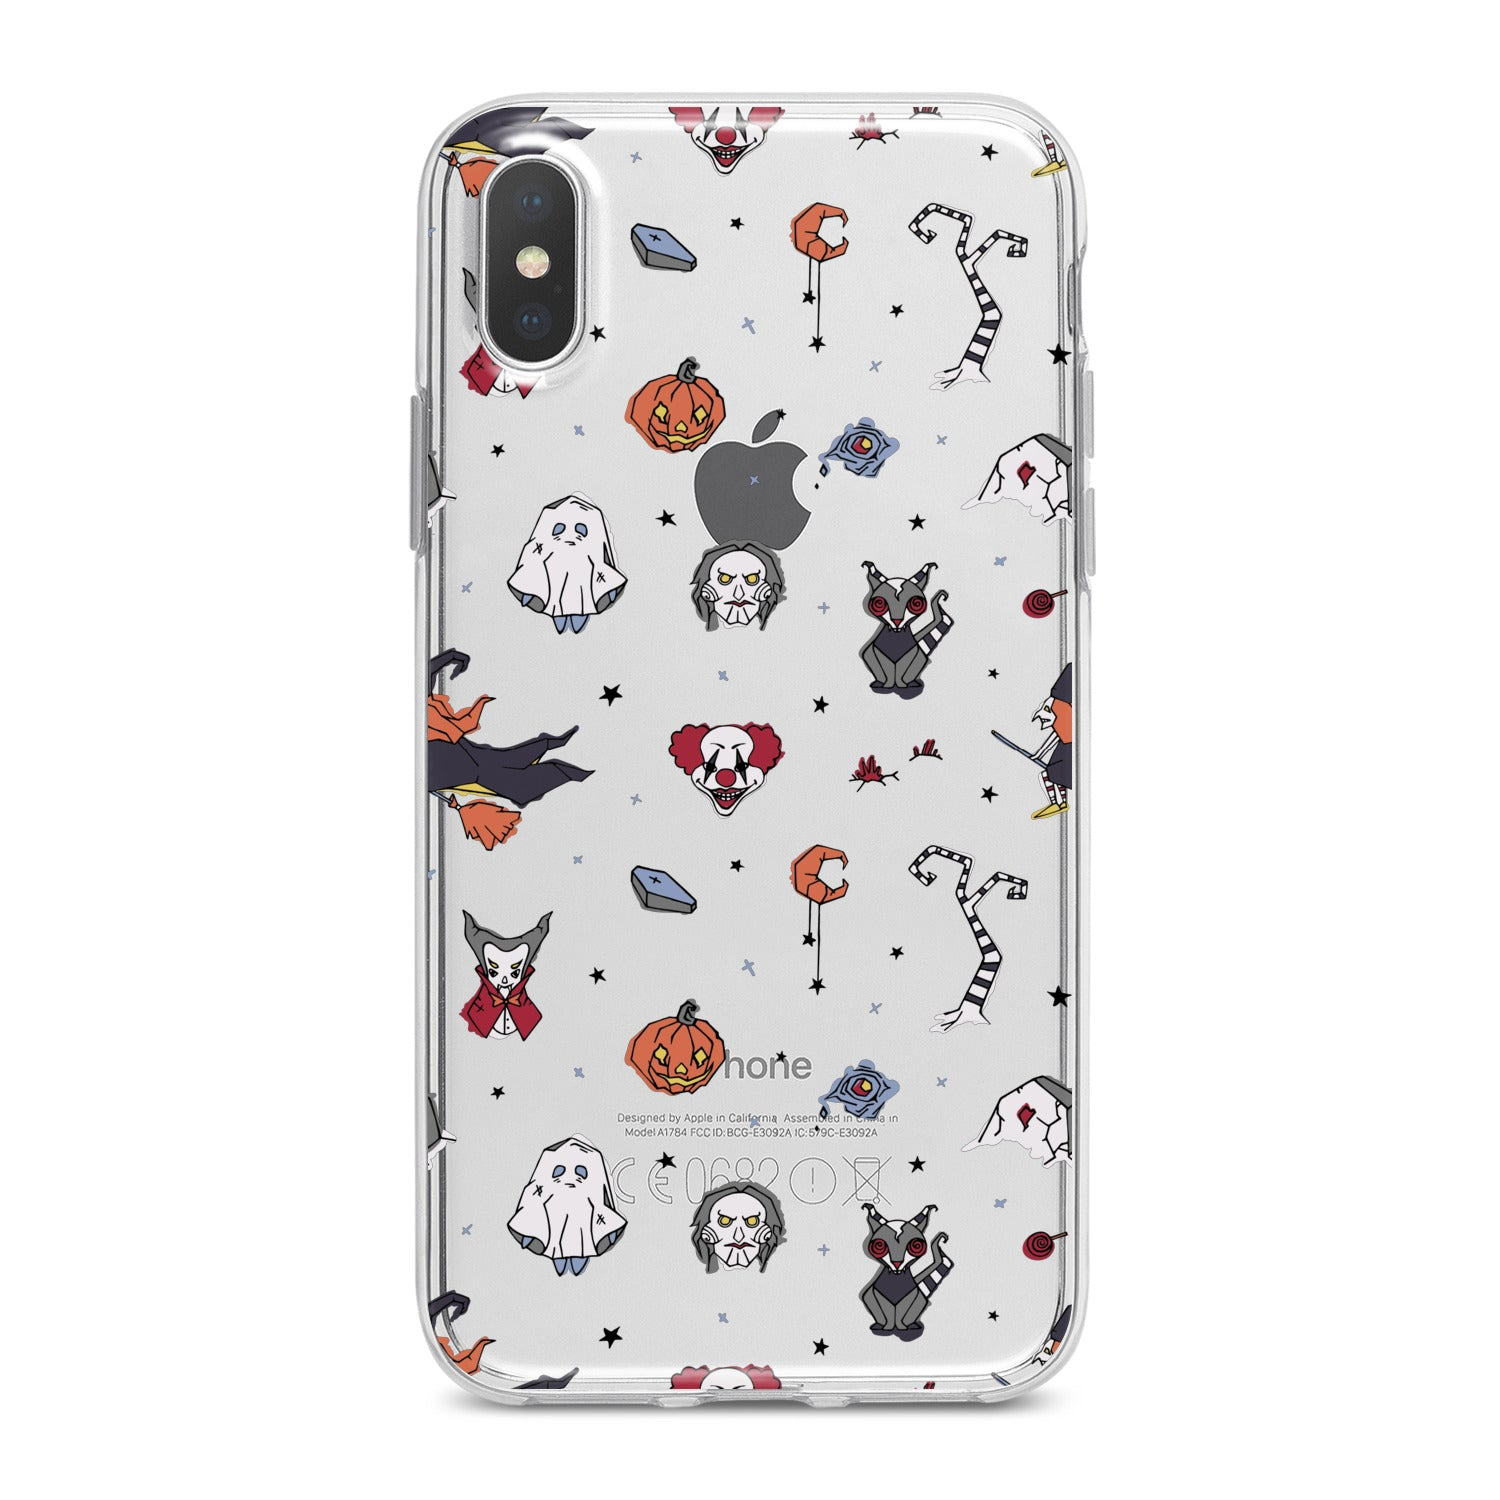 Lex Altern Halloween Theme Phone Case for your iPhone & Android phone.